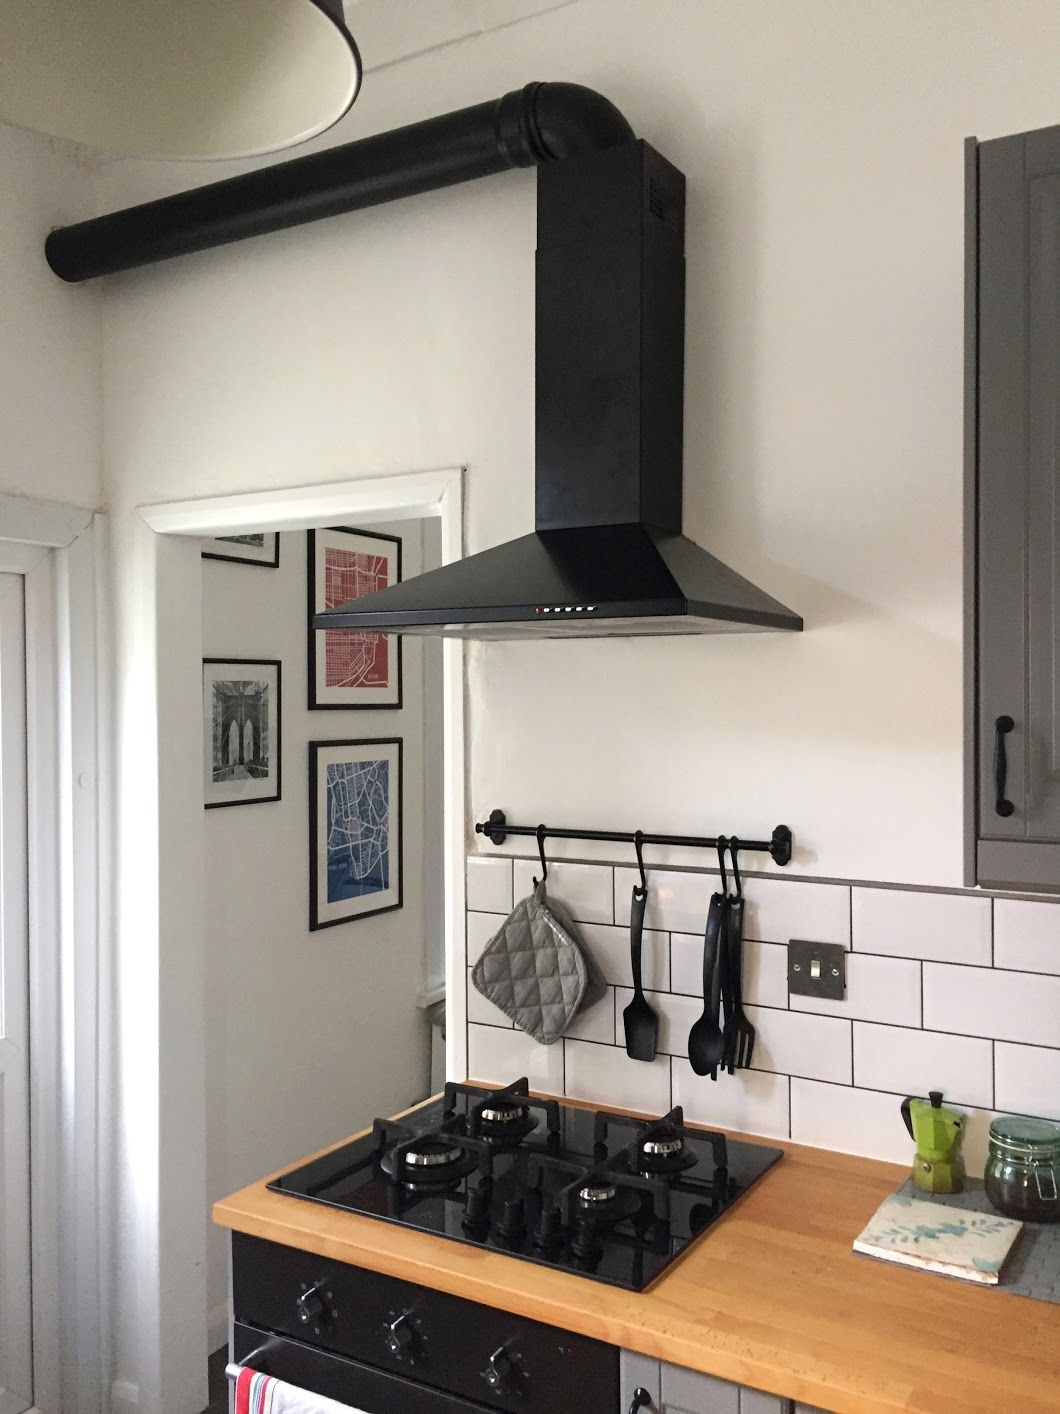 Extractor Cocina Industrial Kitchen Idea Cast Iron Down Pipe Gutter Used As Extractor Hood